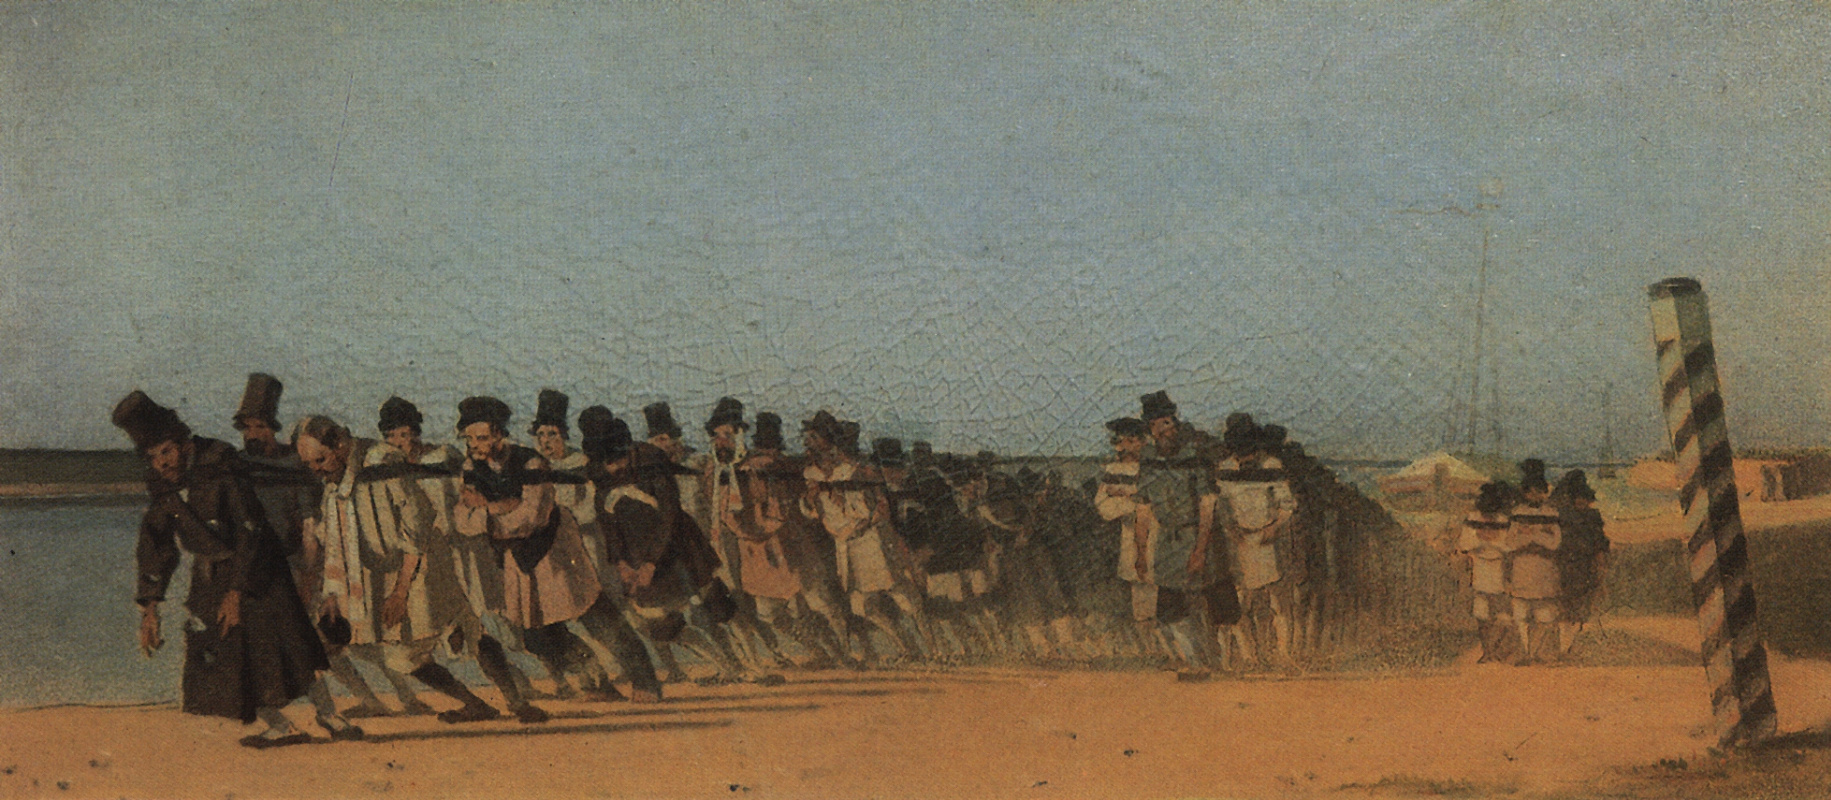 Vasily Vereshchagin. The haulers. Unrealized sketch for the painting